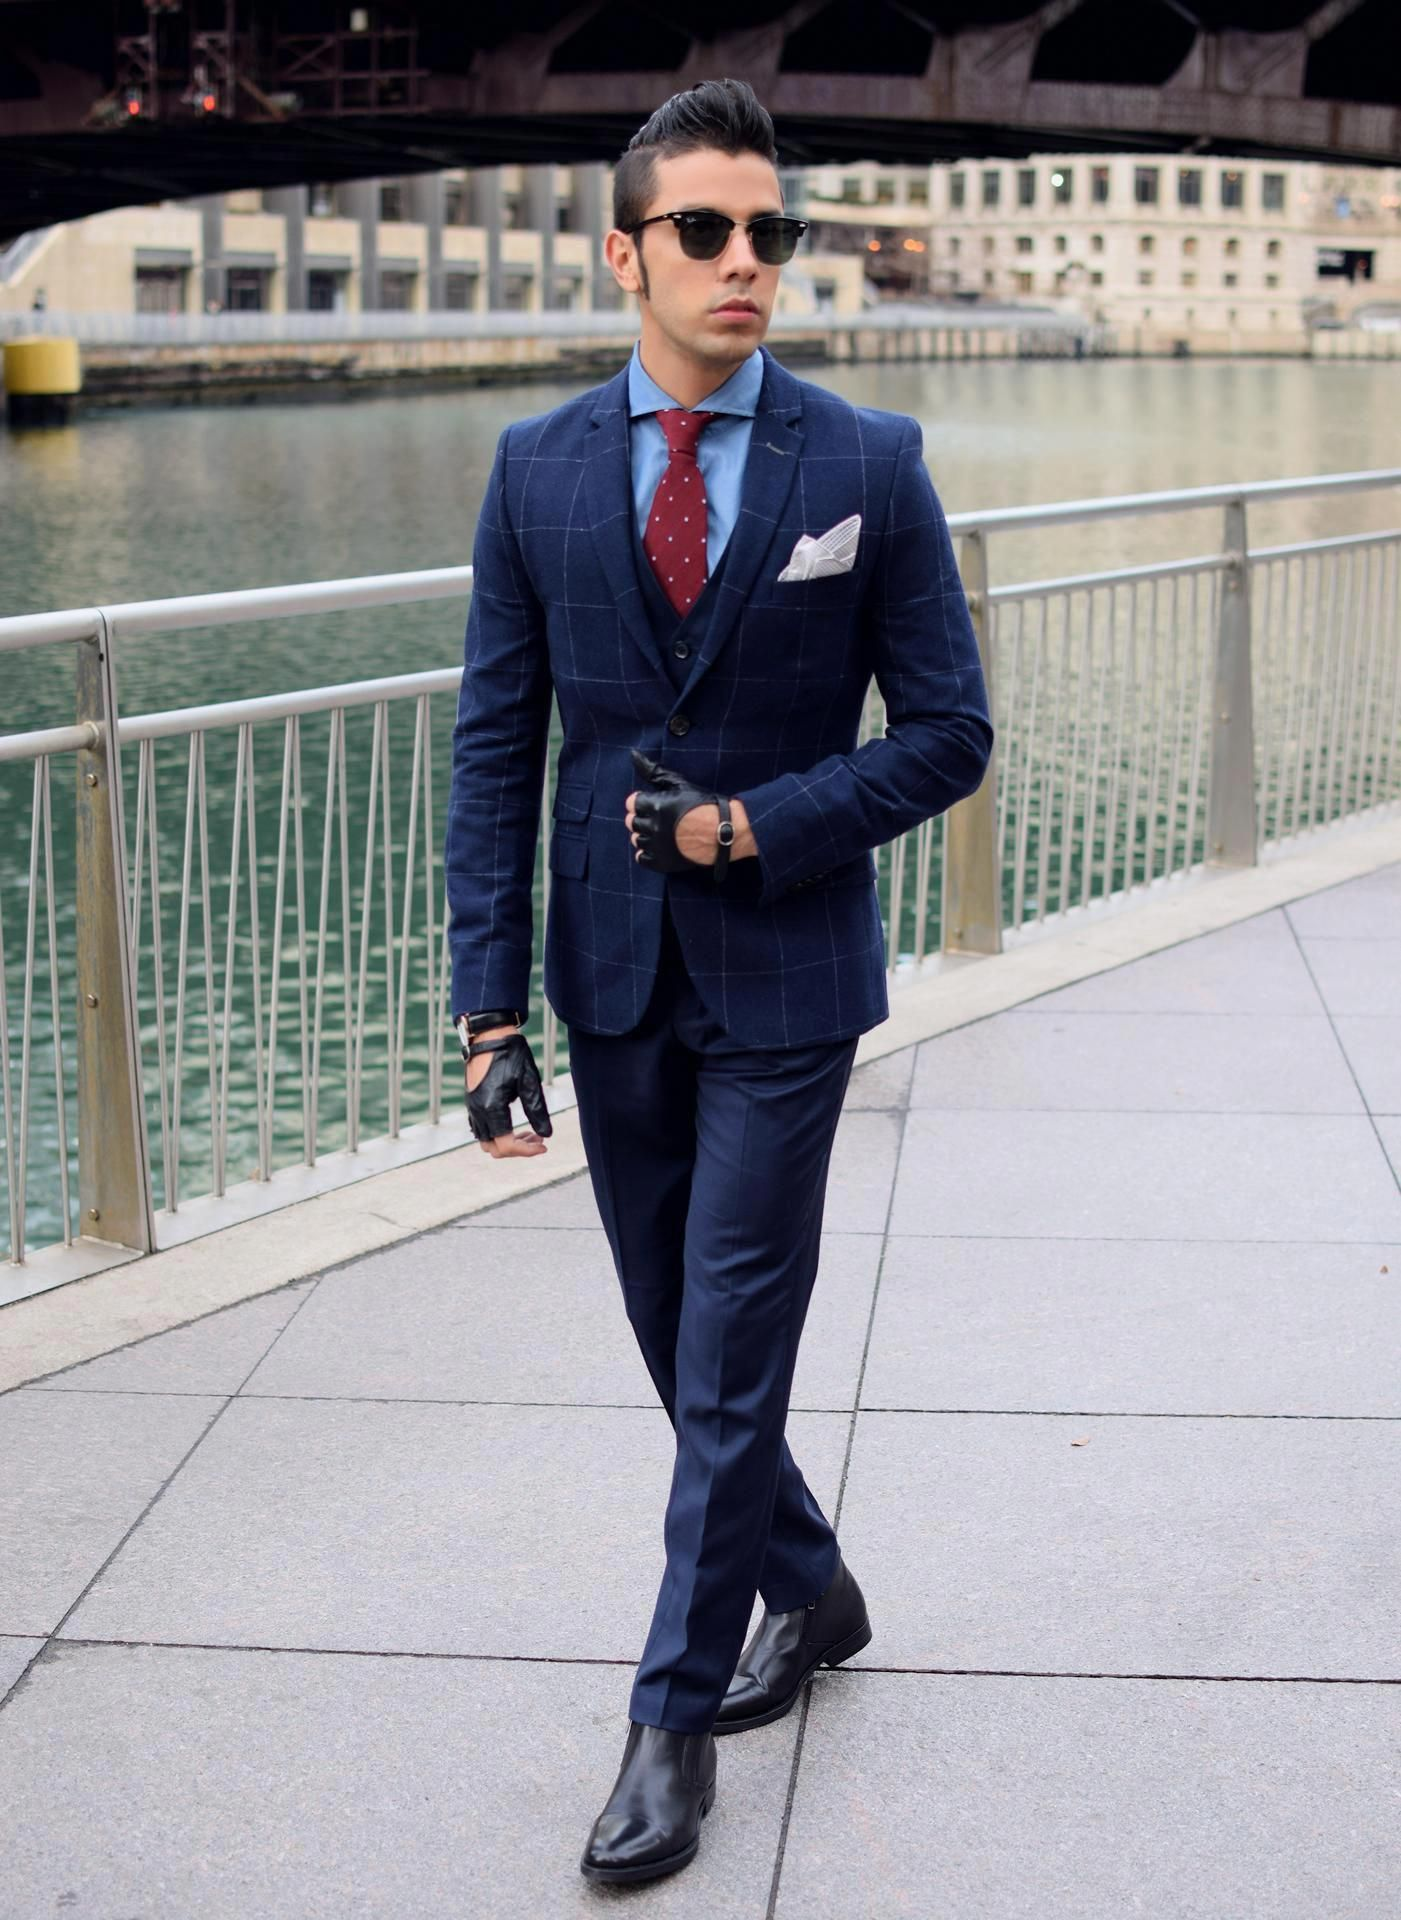 6e502da0968 Chelsea boots with navy suit from The Mood Maker - Frankodean ...